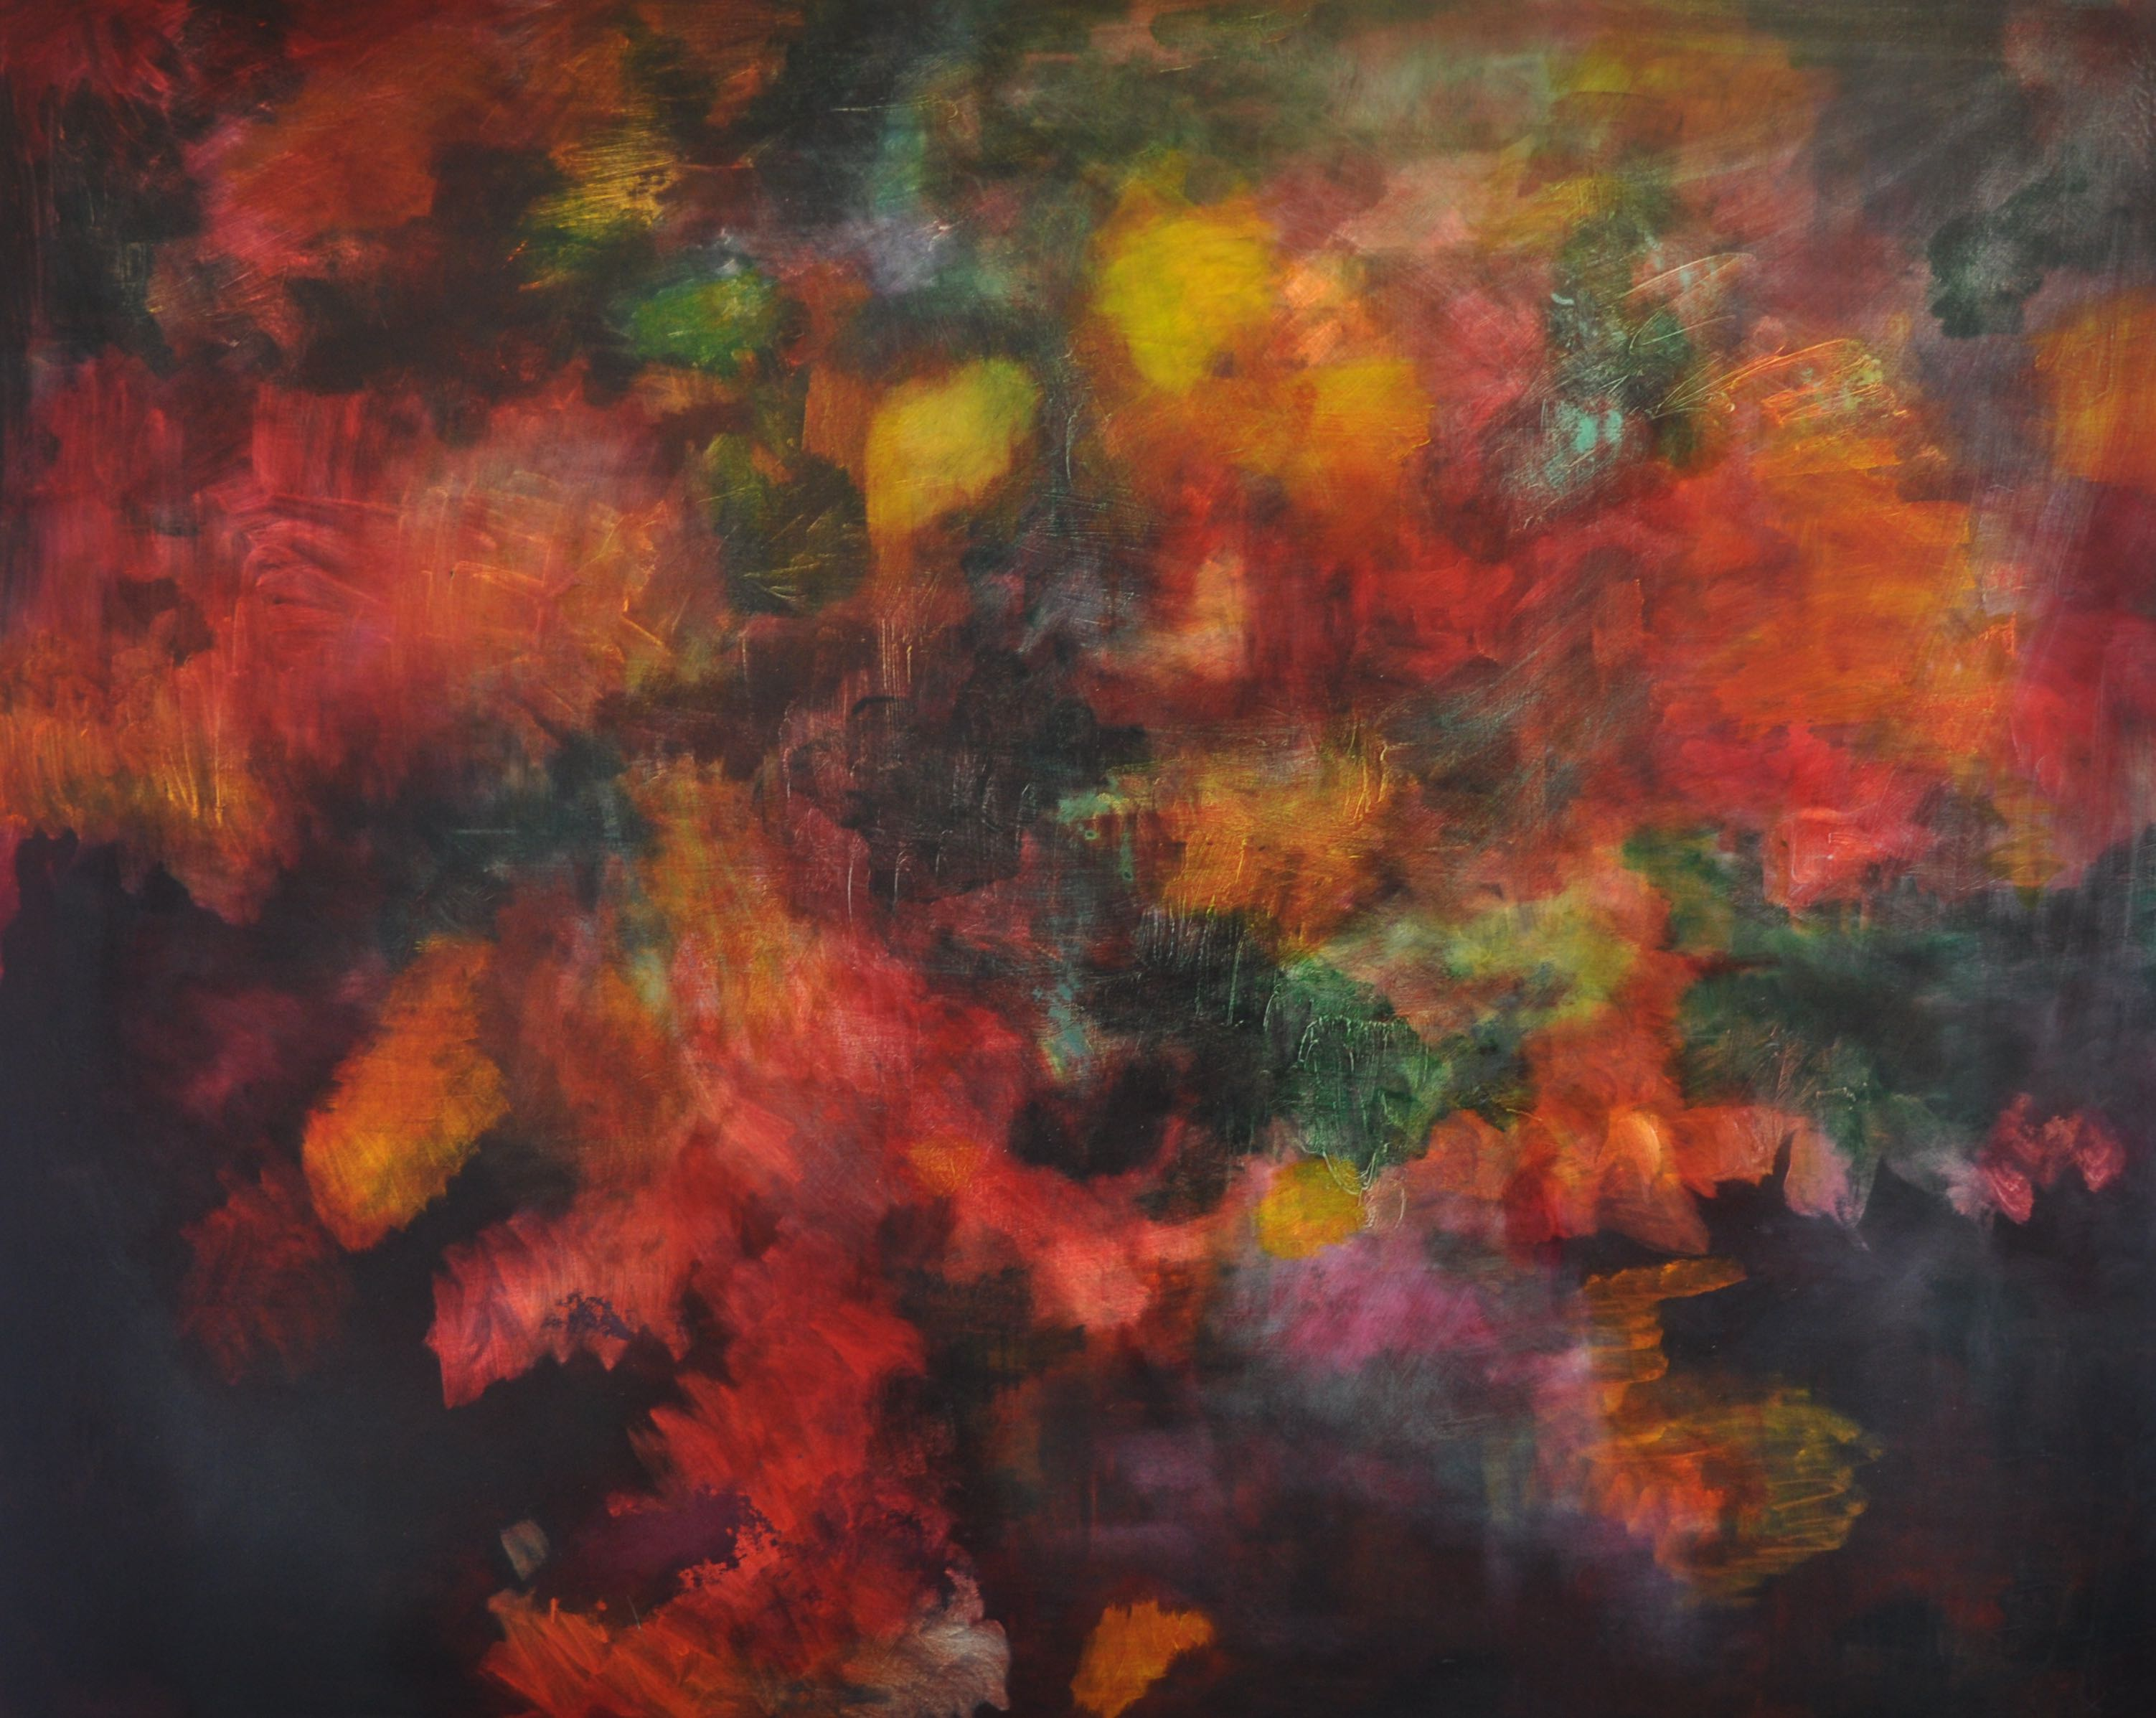 Nothing Like the Sun 03 120x150cm Oil on Canvas 2010